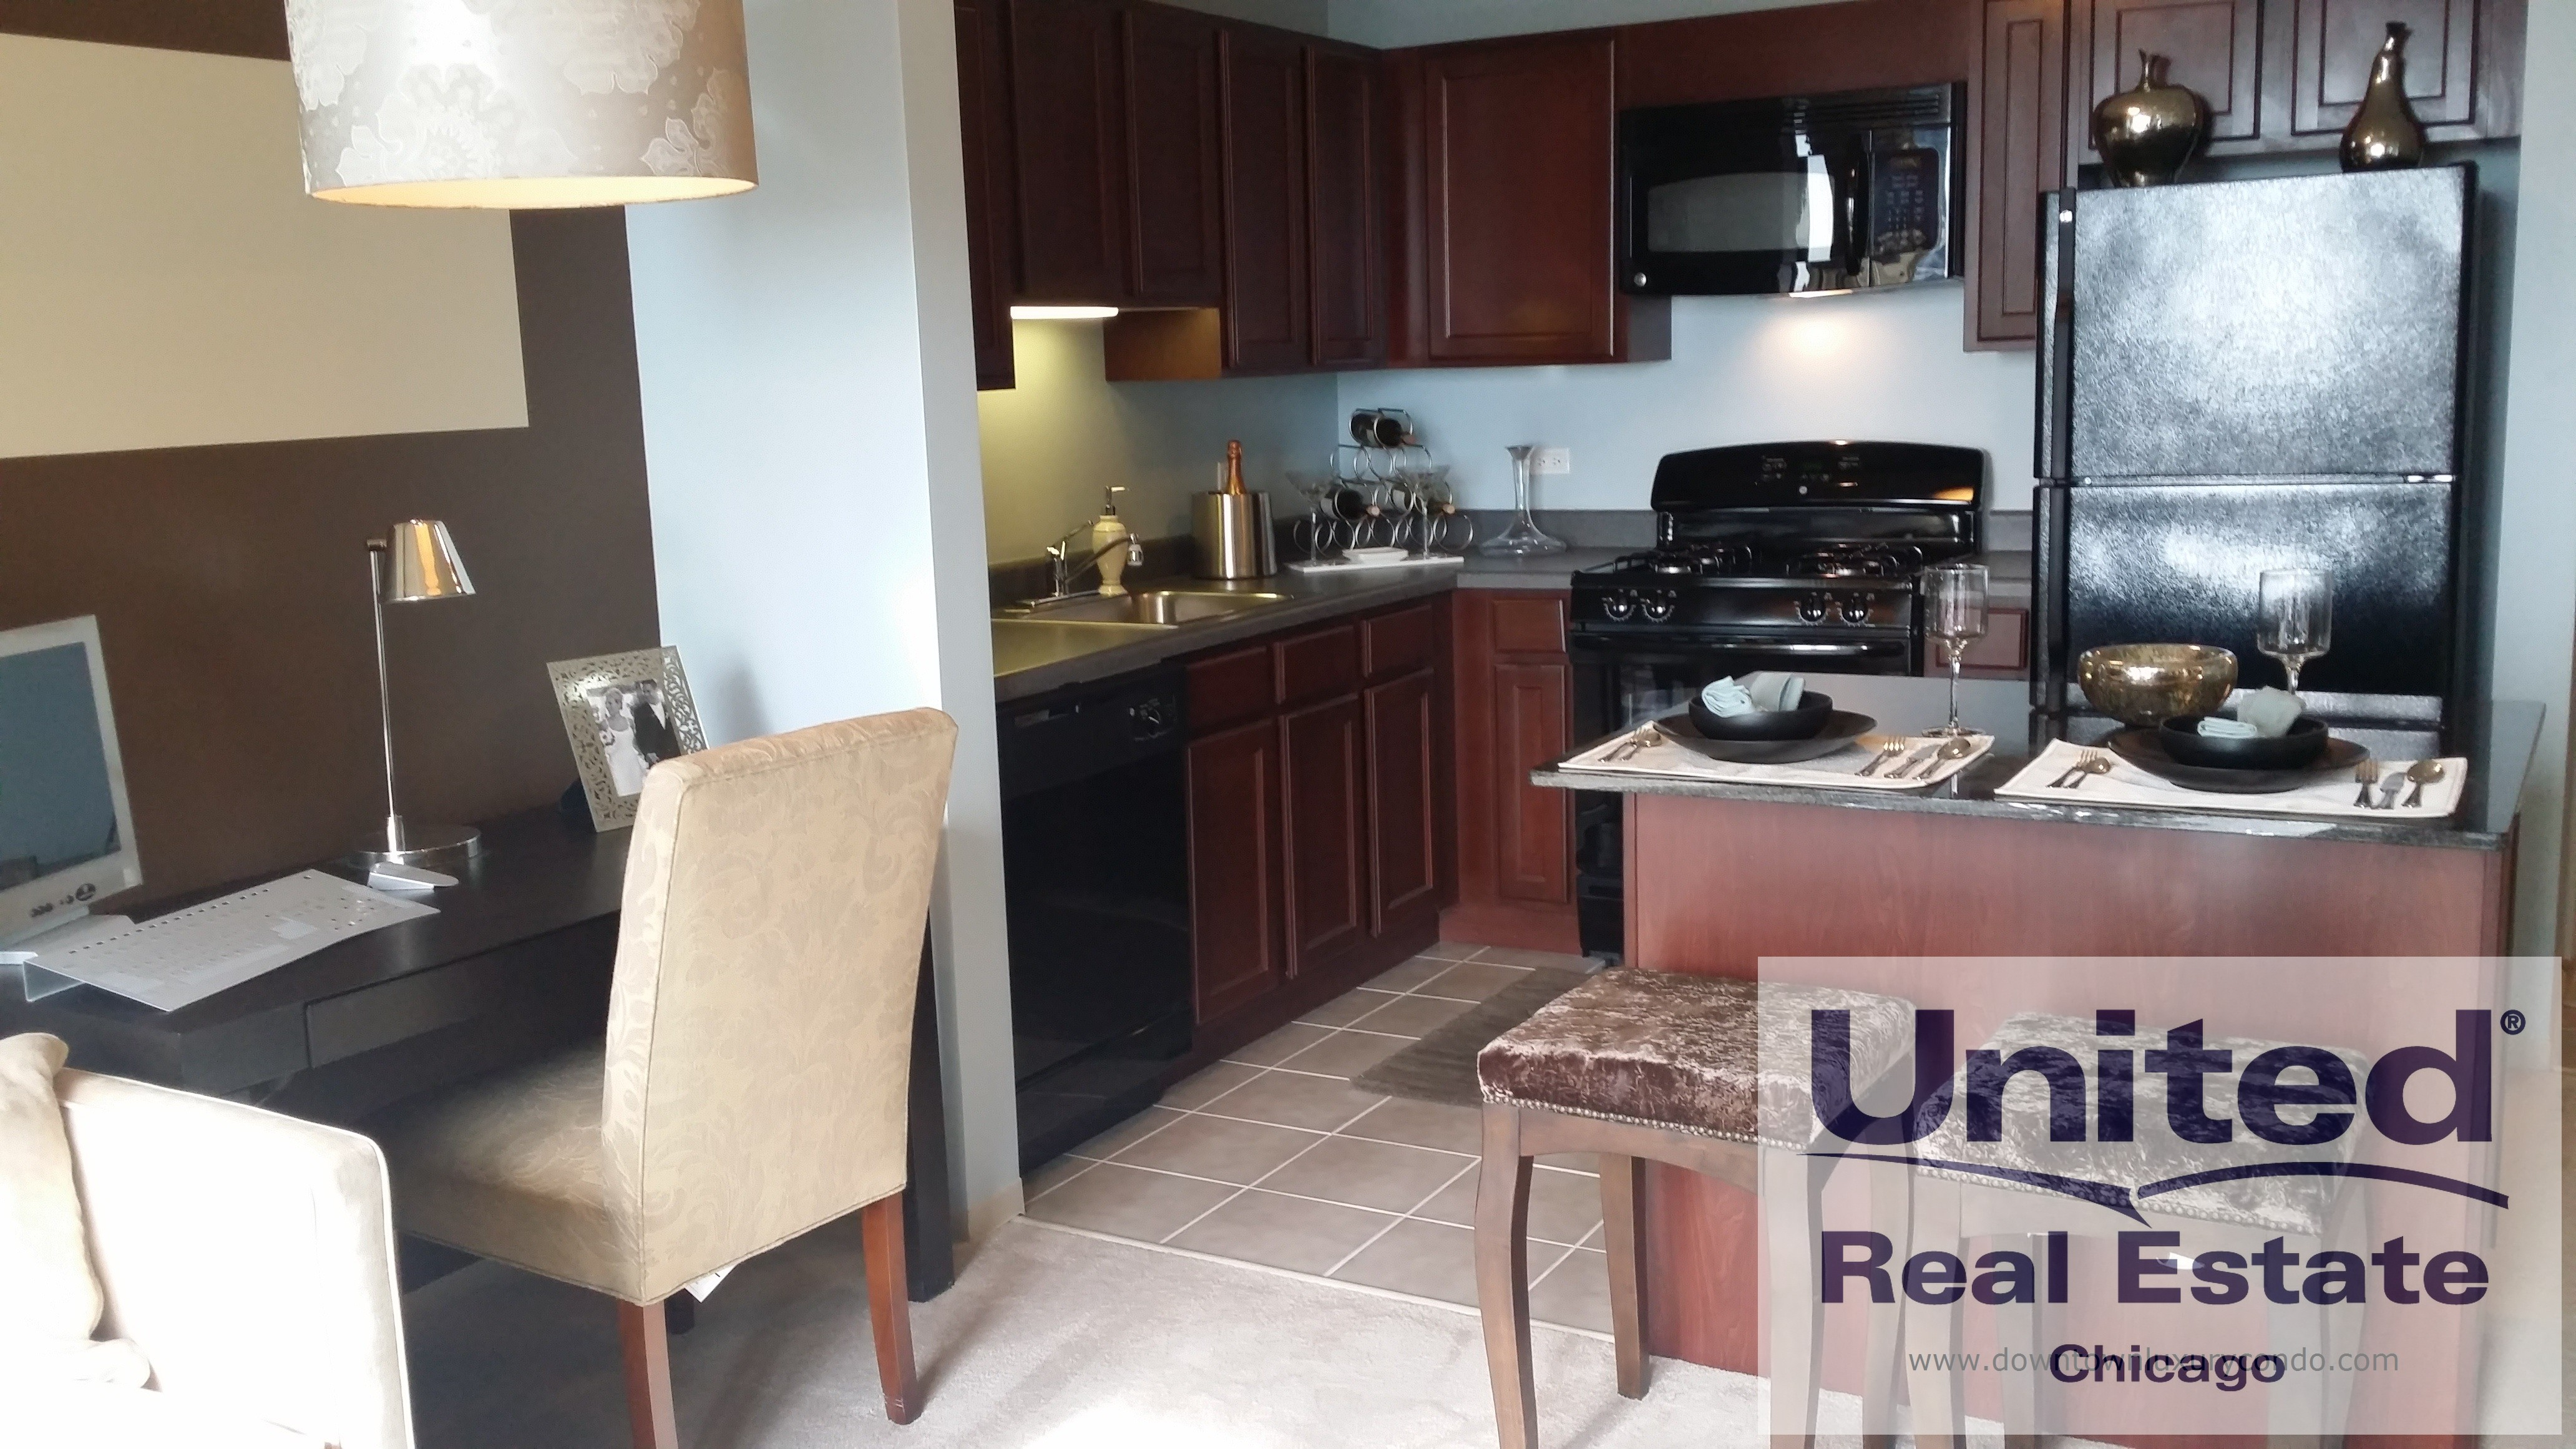 East South Water St N Field Blvd 1 1505 Chicago Il 60601 1 Bedroom Apartment For Rent For